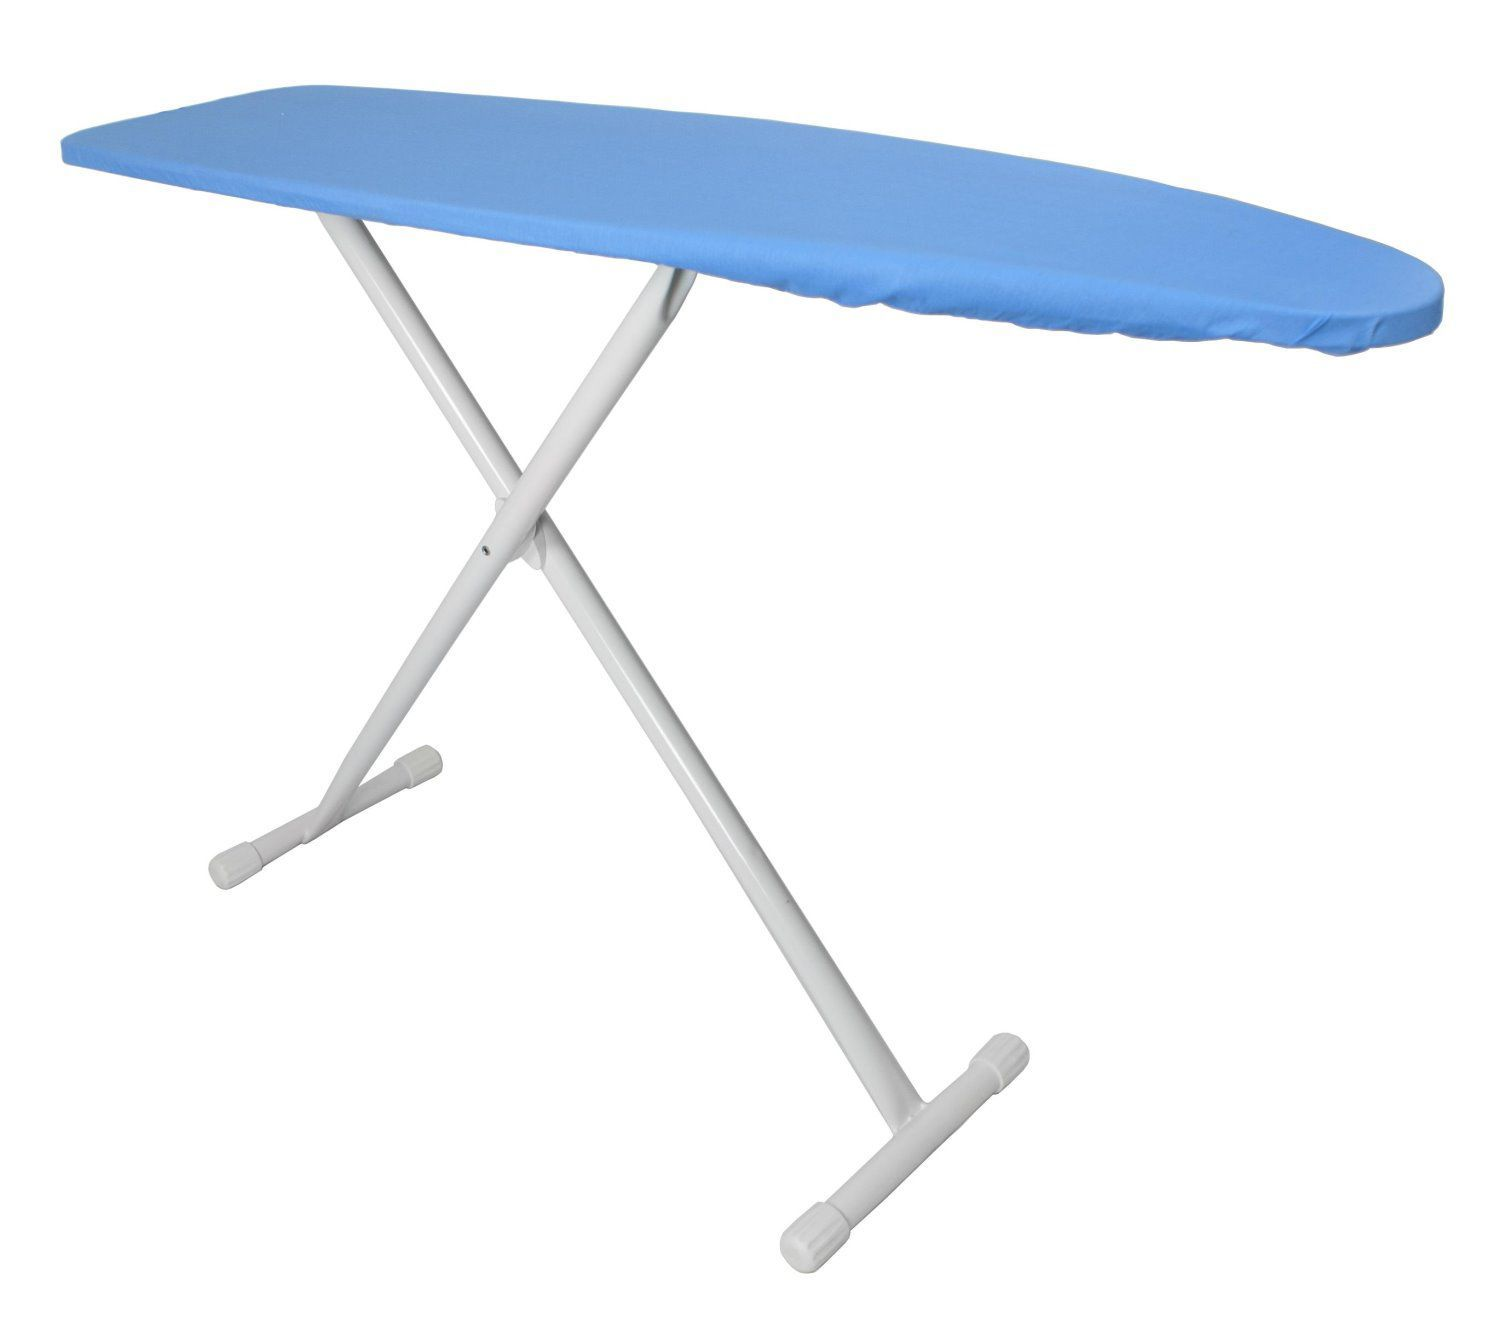 Presstige Ironing Board- Blue Cover